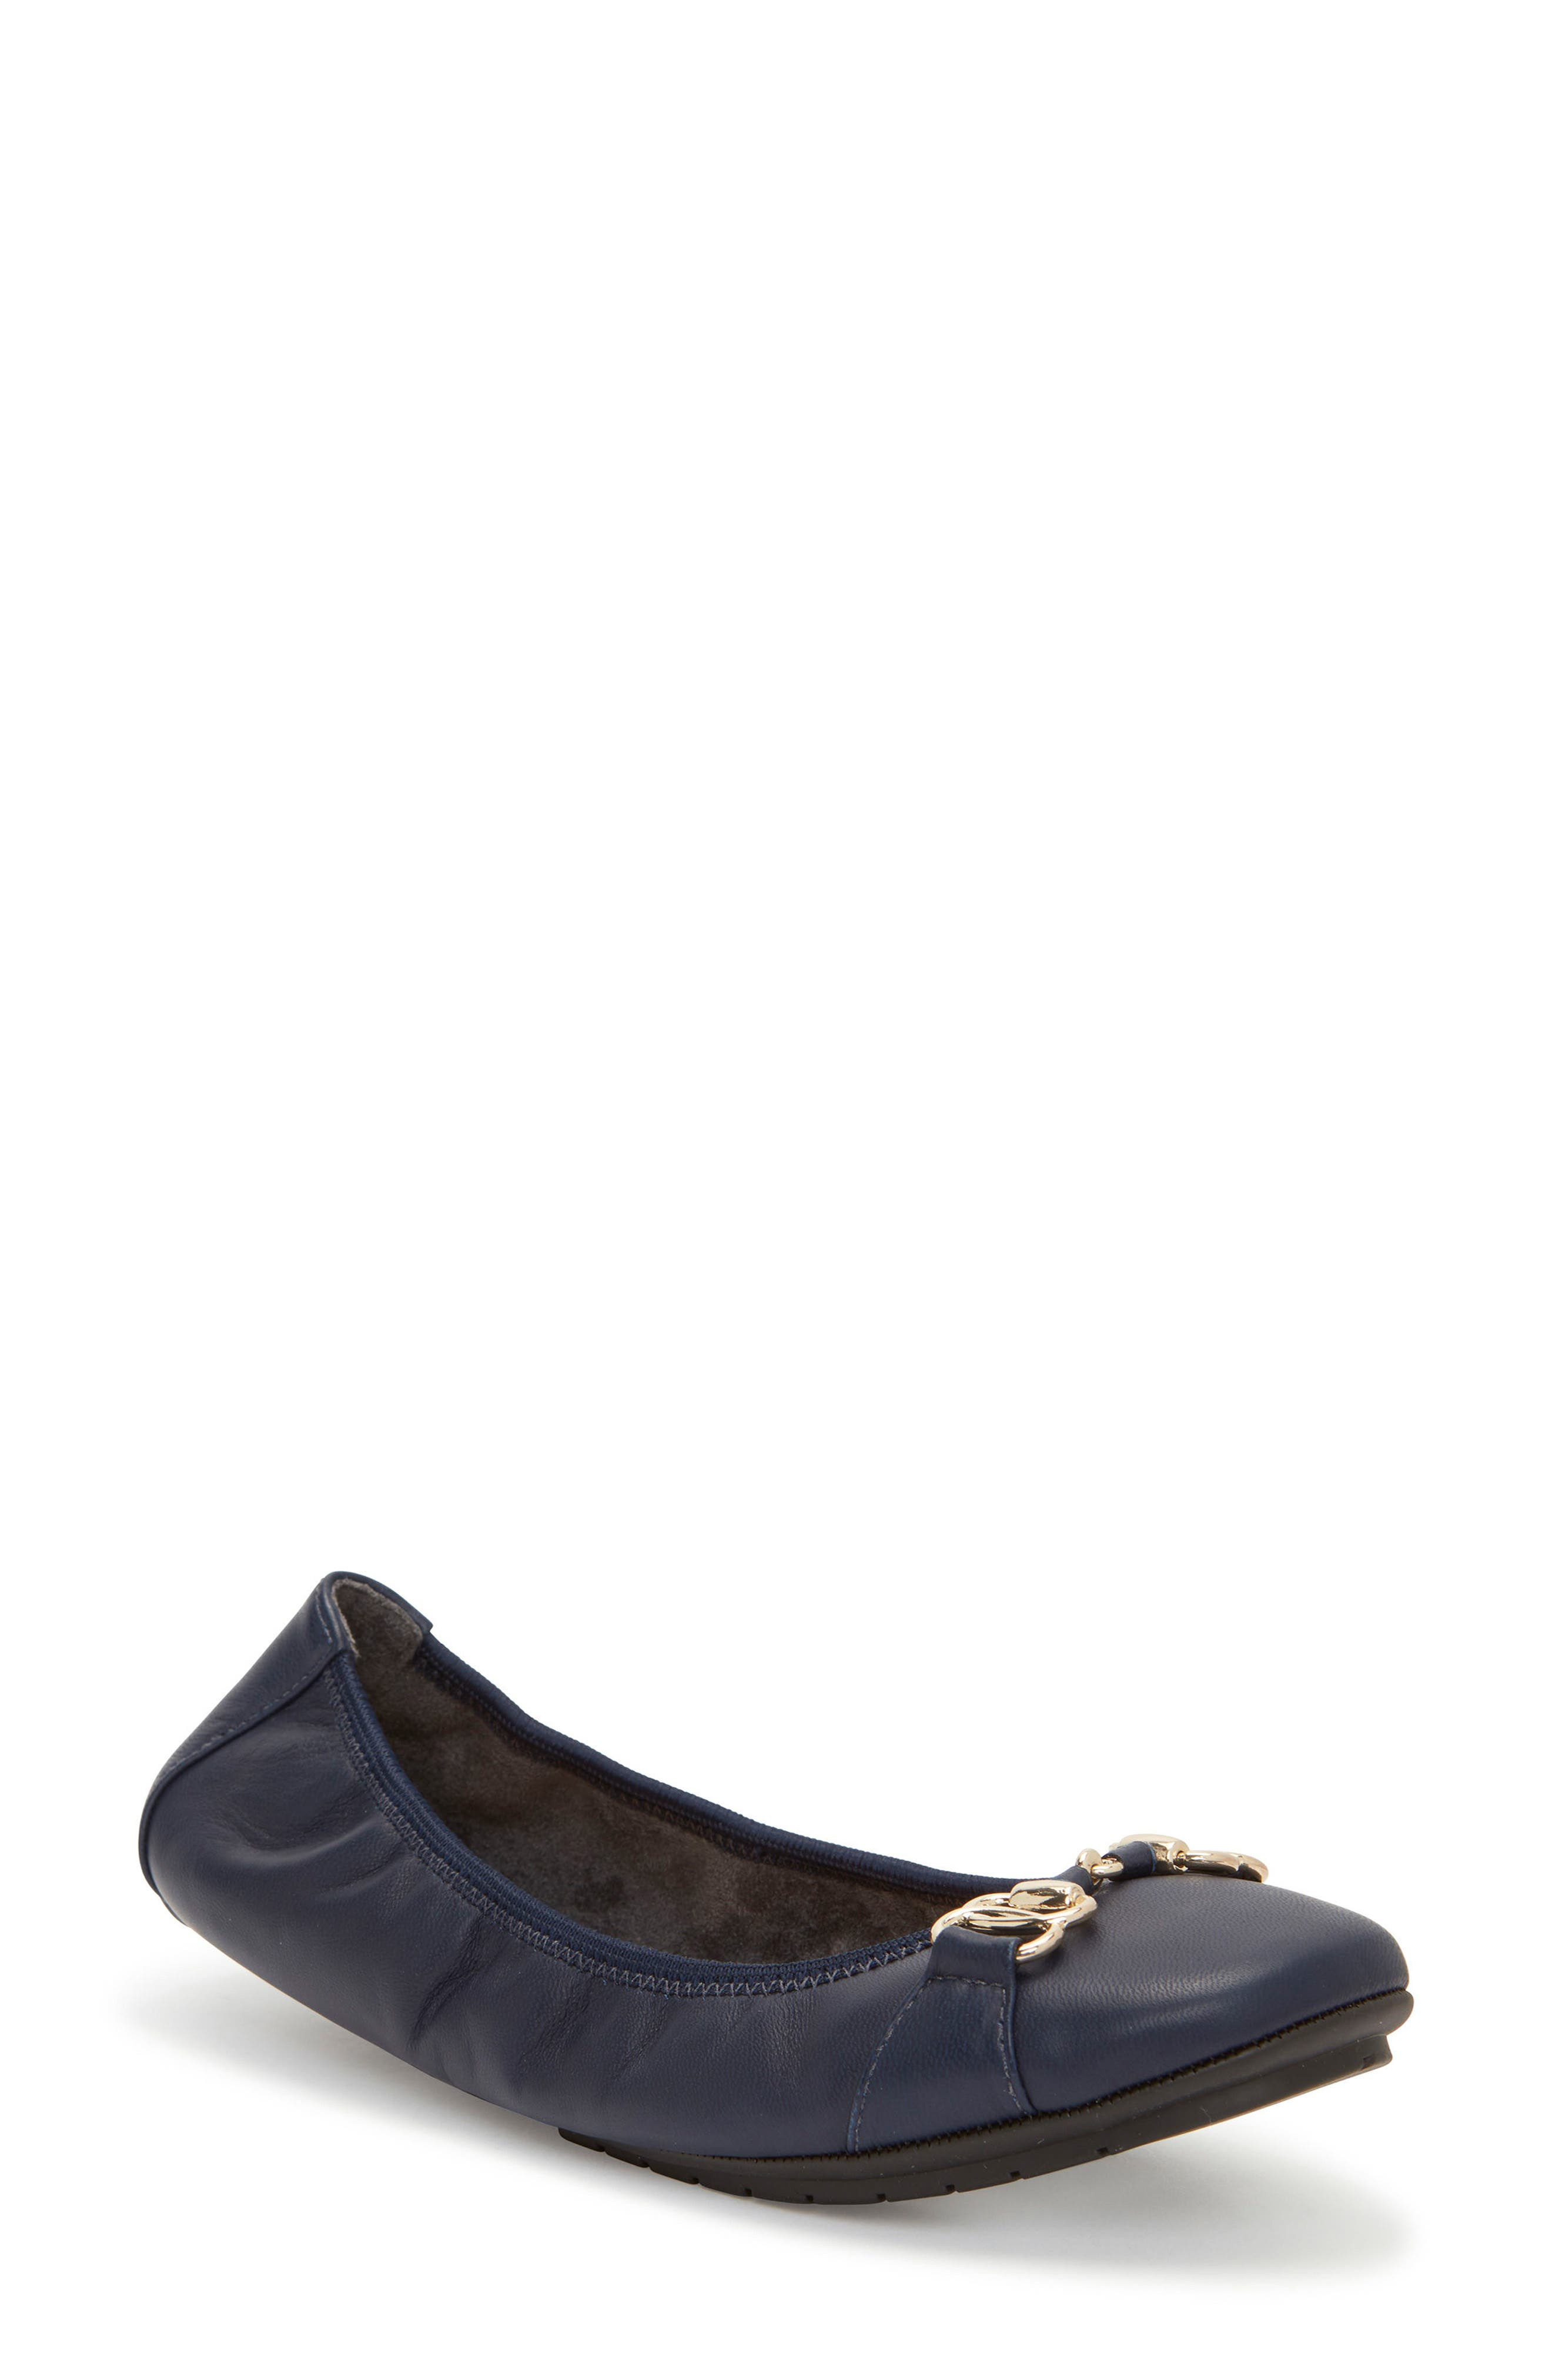 Olympia Skimmer Flat,                             Main thumbnail 1, color,                             Navy Leather